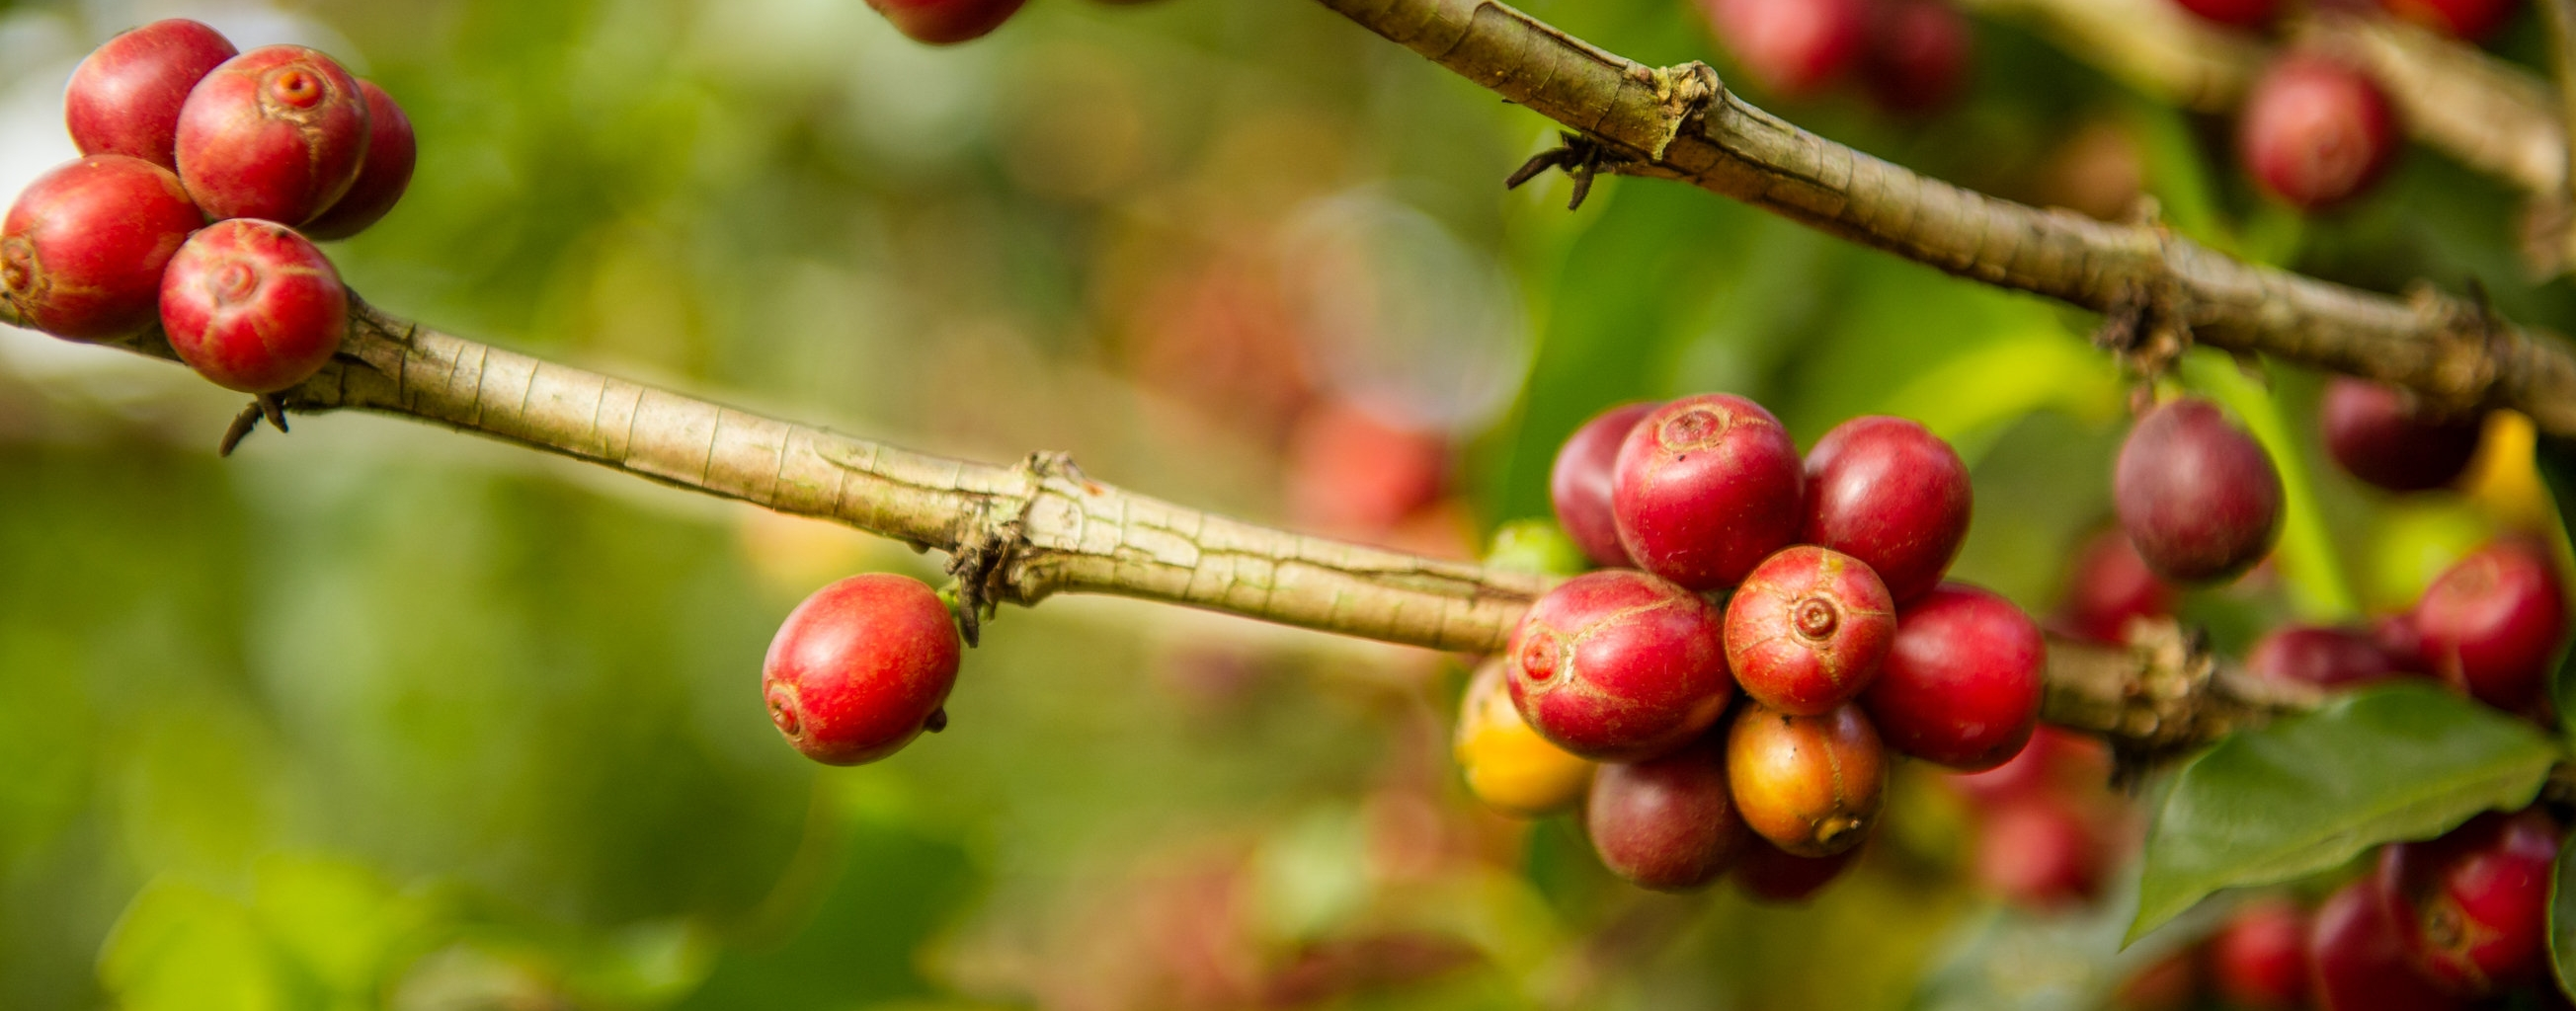 Ripe coffee cherries on a bush. Olam sources coffee in Kenya, Guatemala, Laos, Yemen and Burundi.